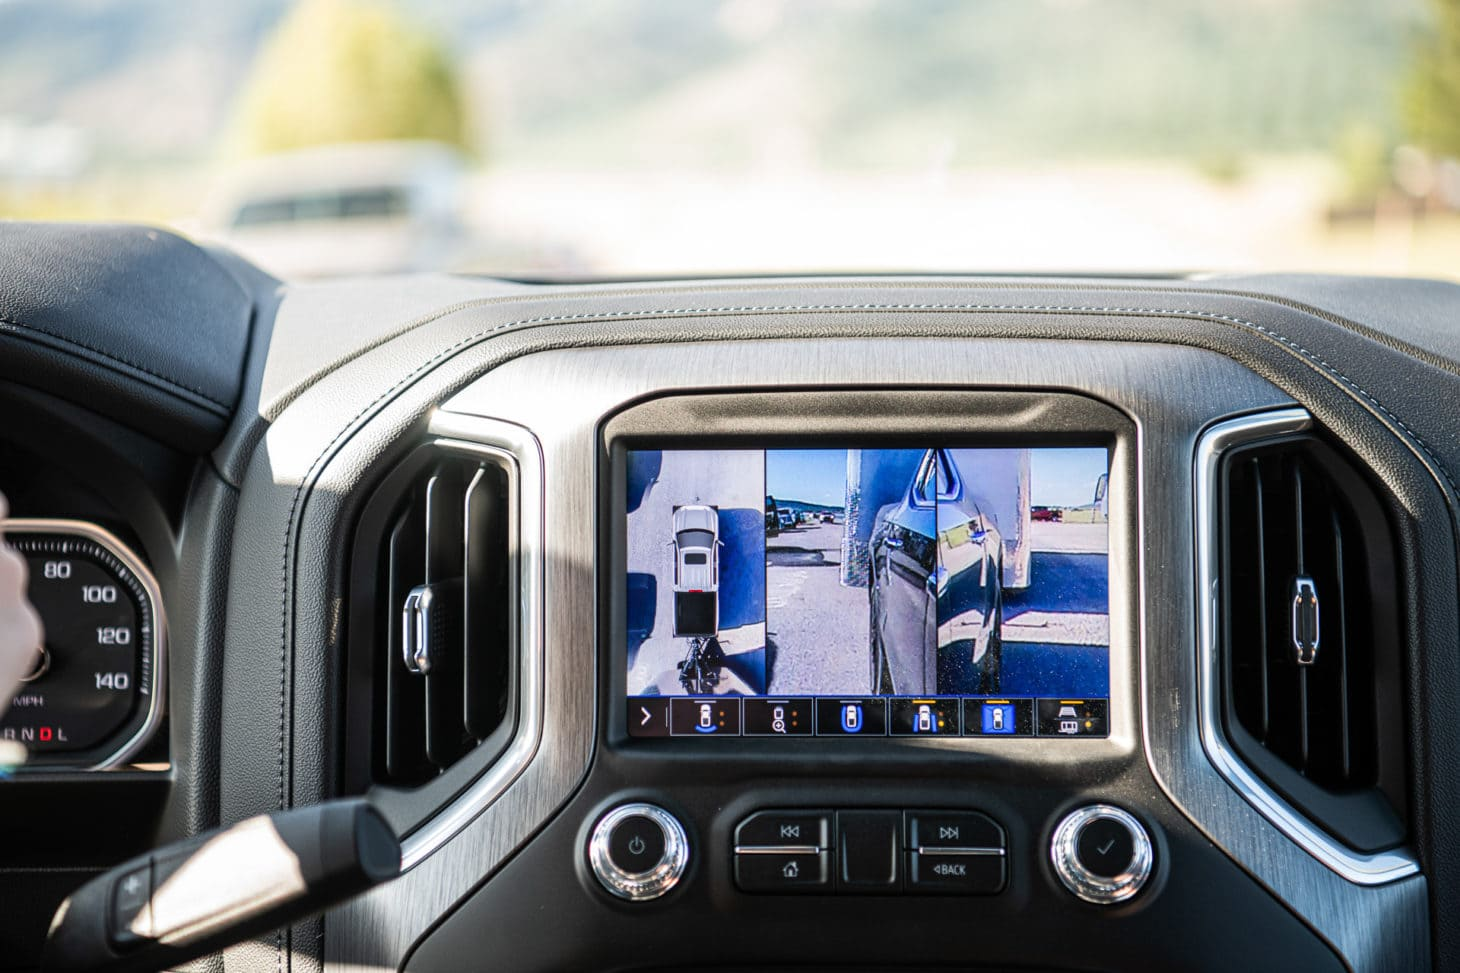 Rear view camera of a pickup truck with view of hitch